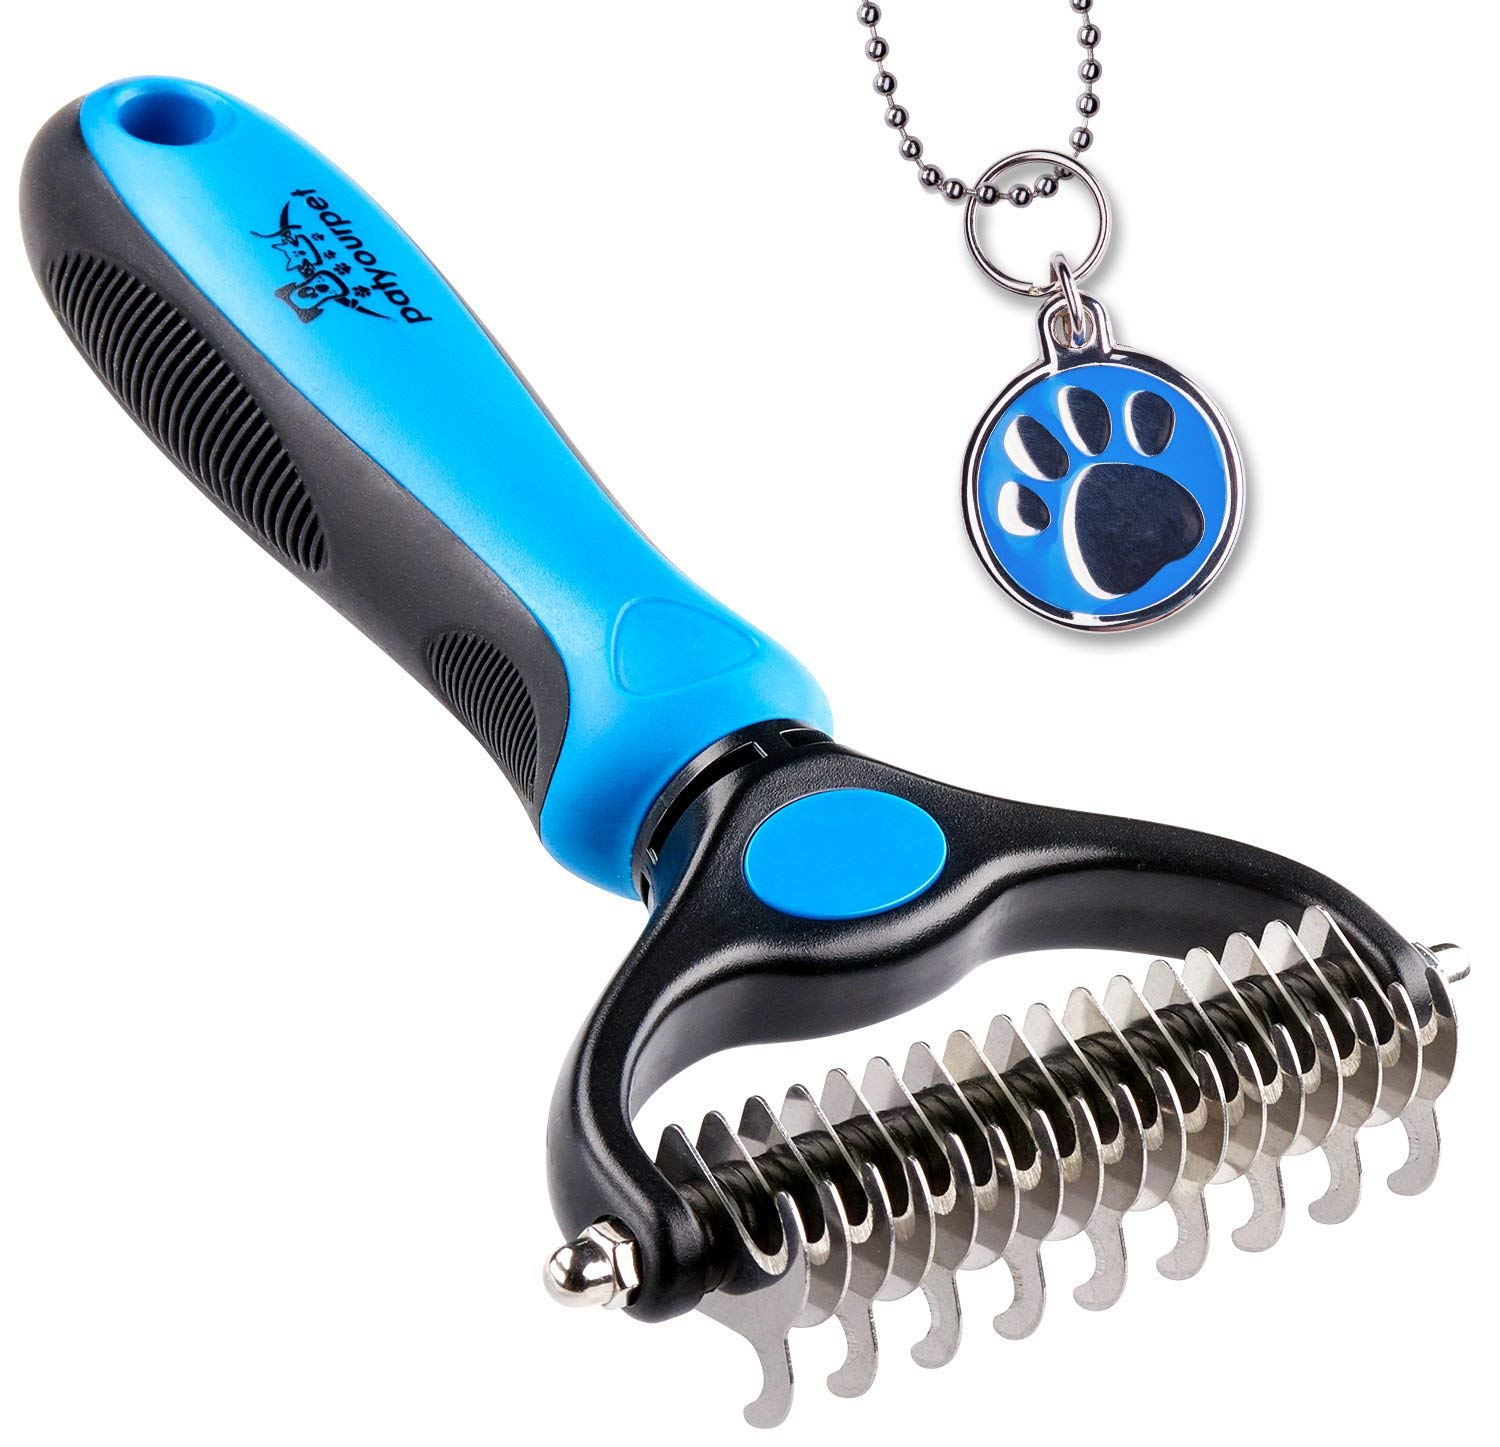 TOP 10 Best Dog Brushes For Short Hair Shedding